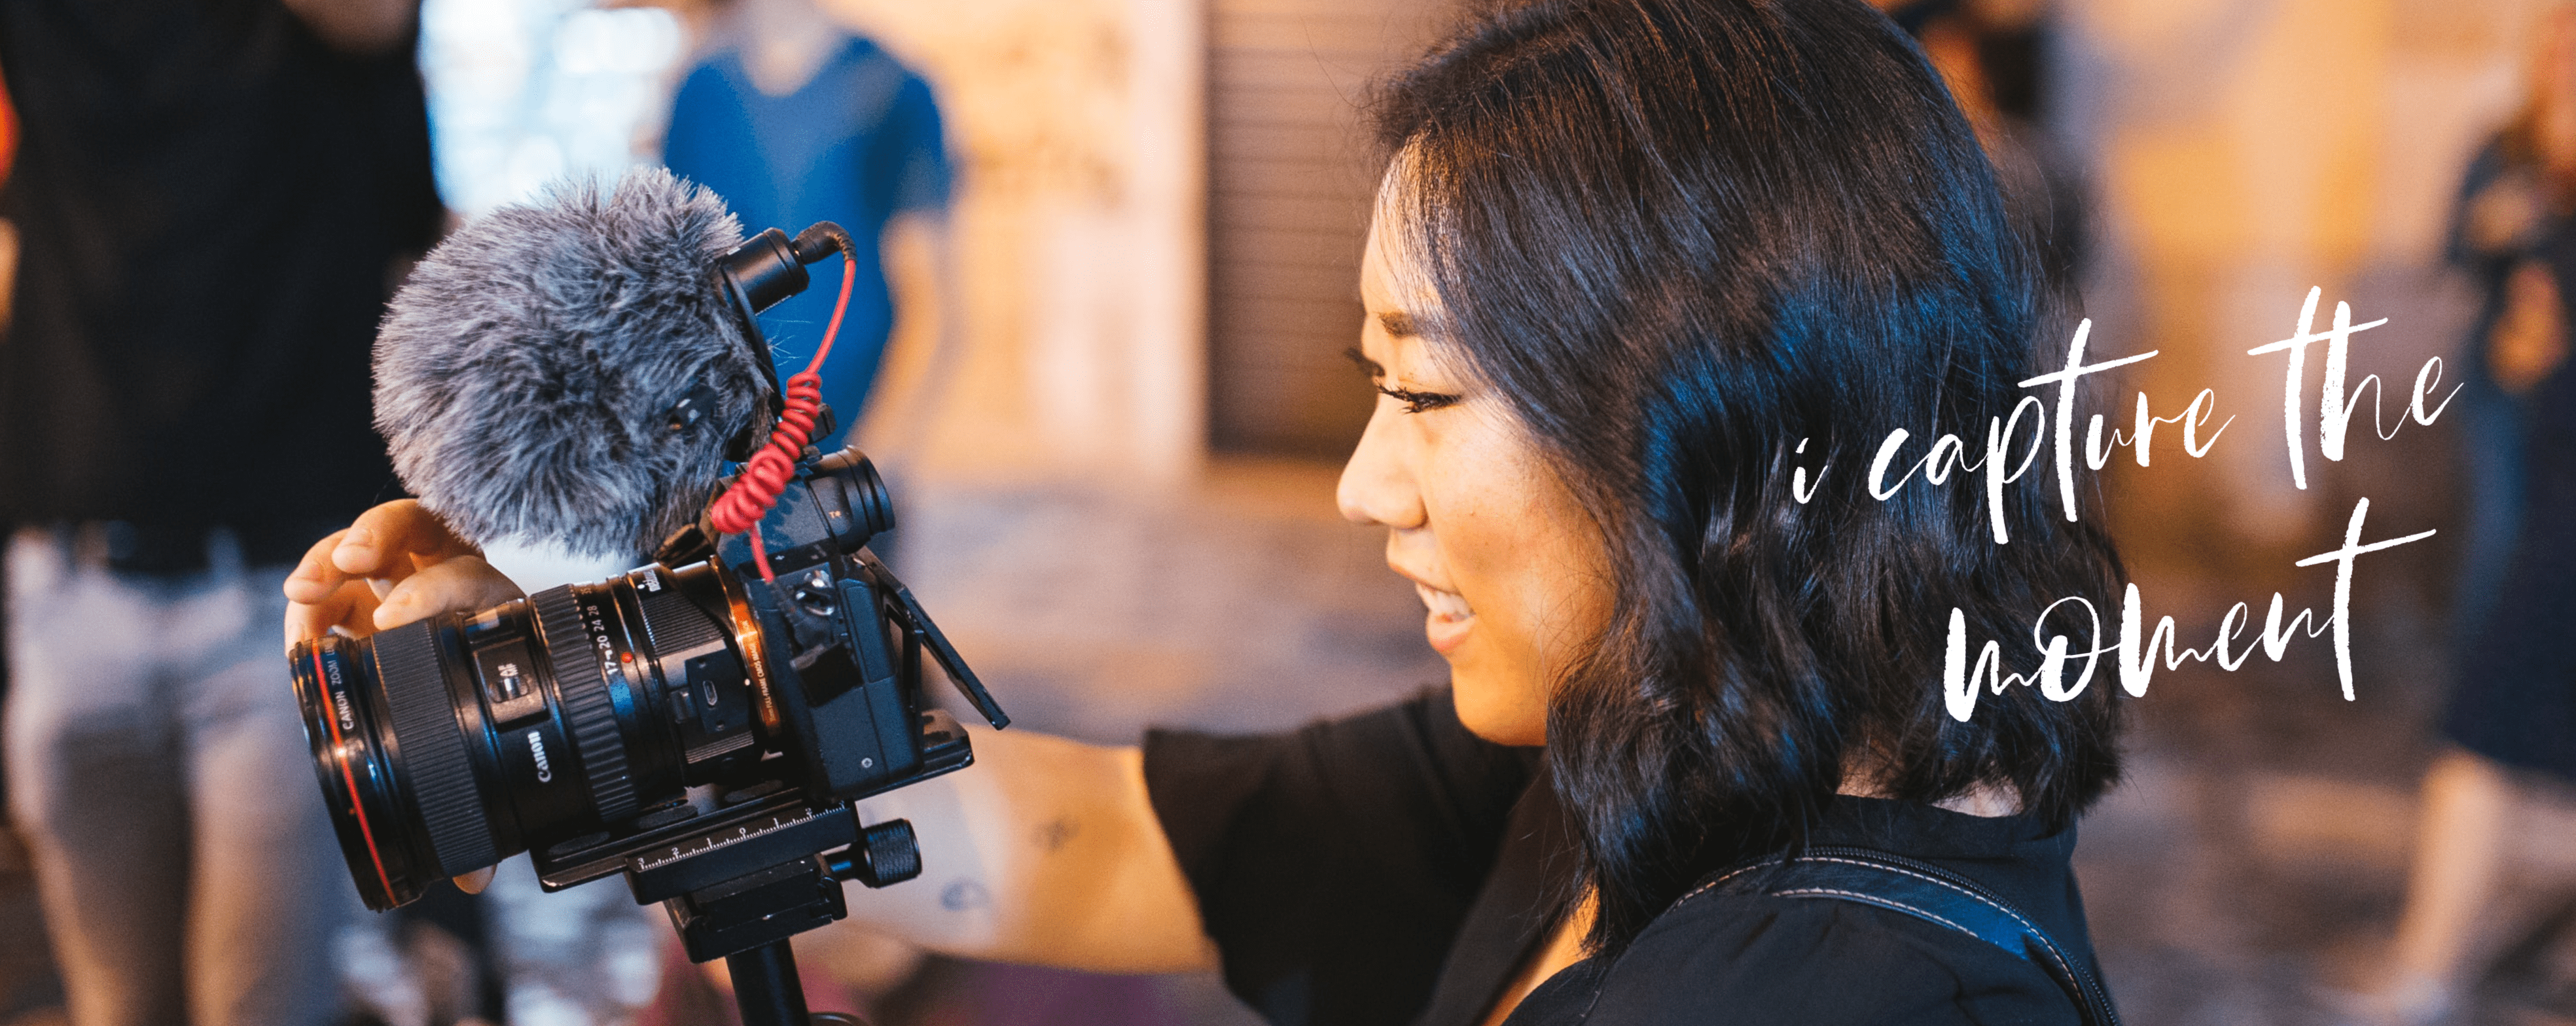 Videographer & Photographer Scholarships for High School Students